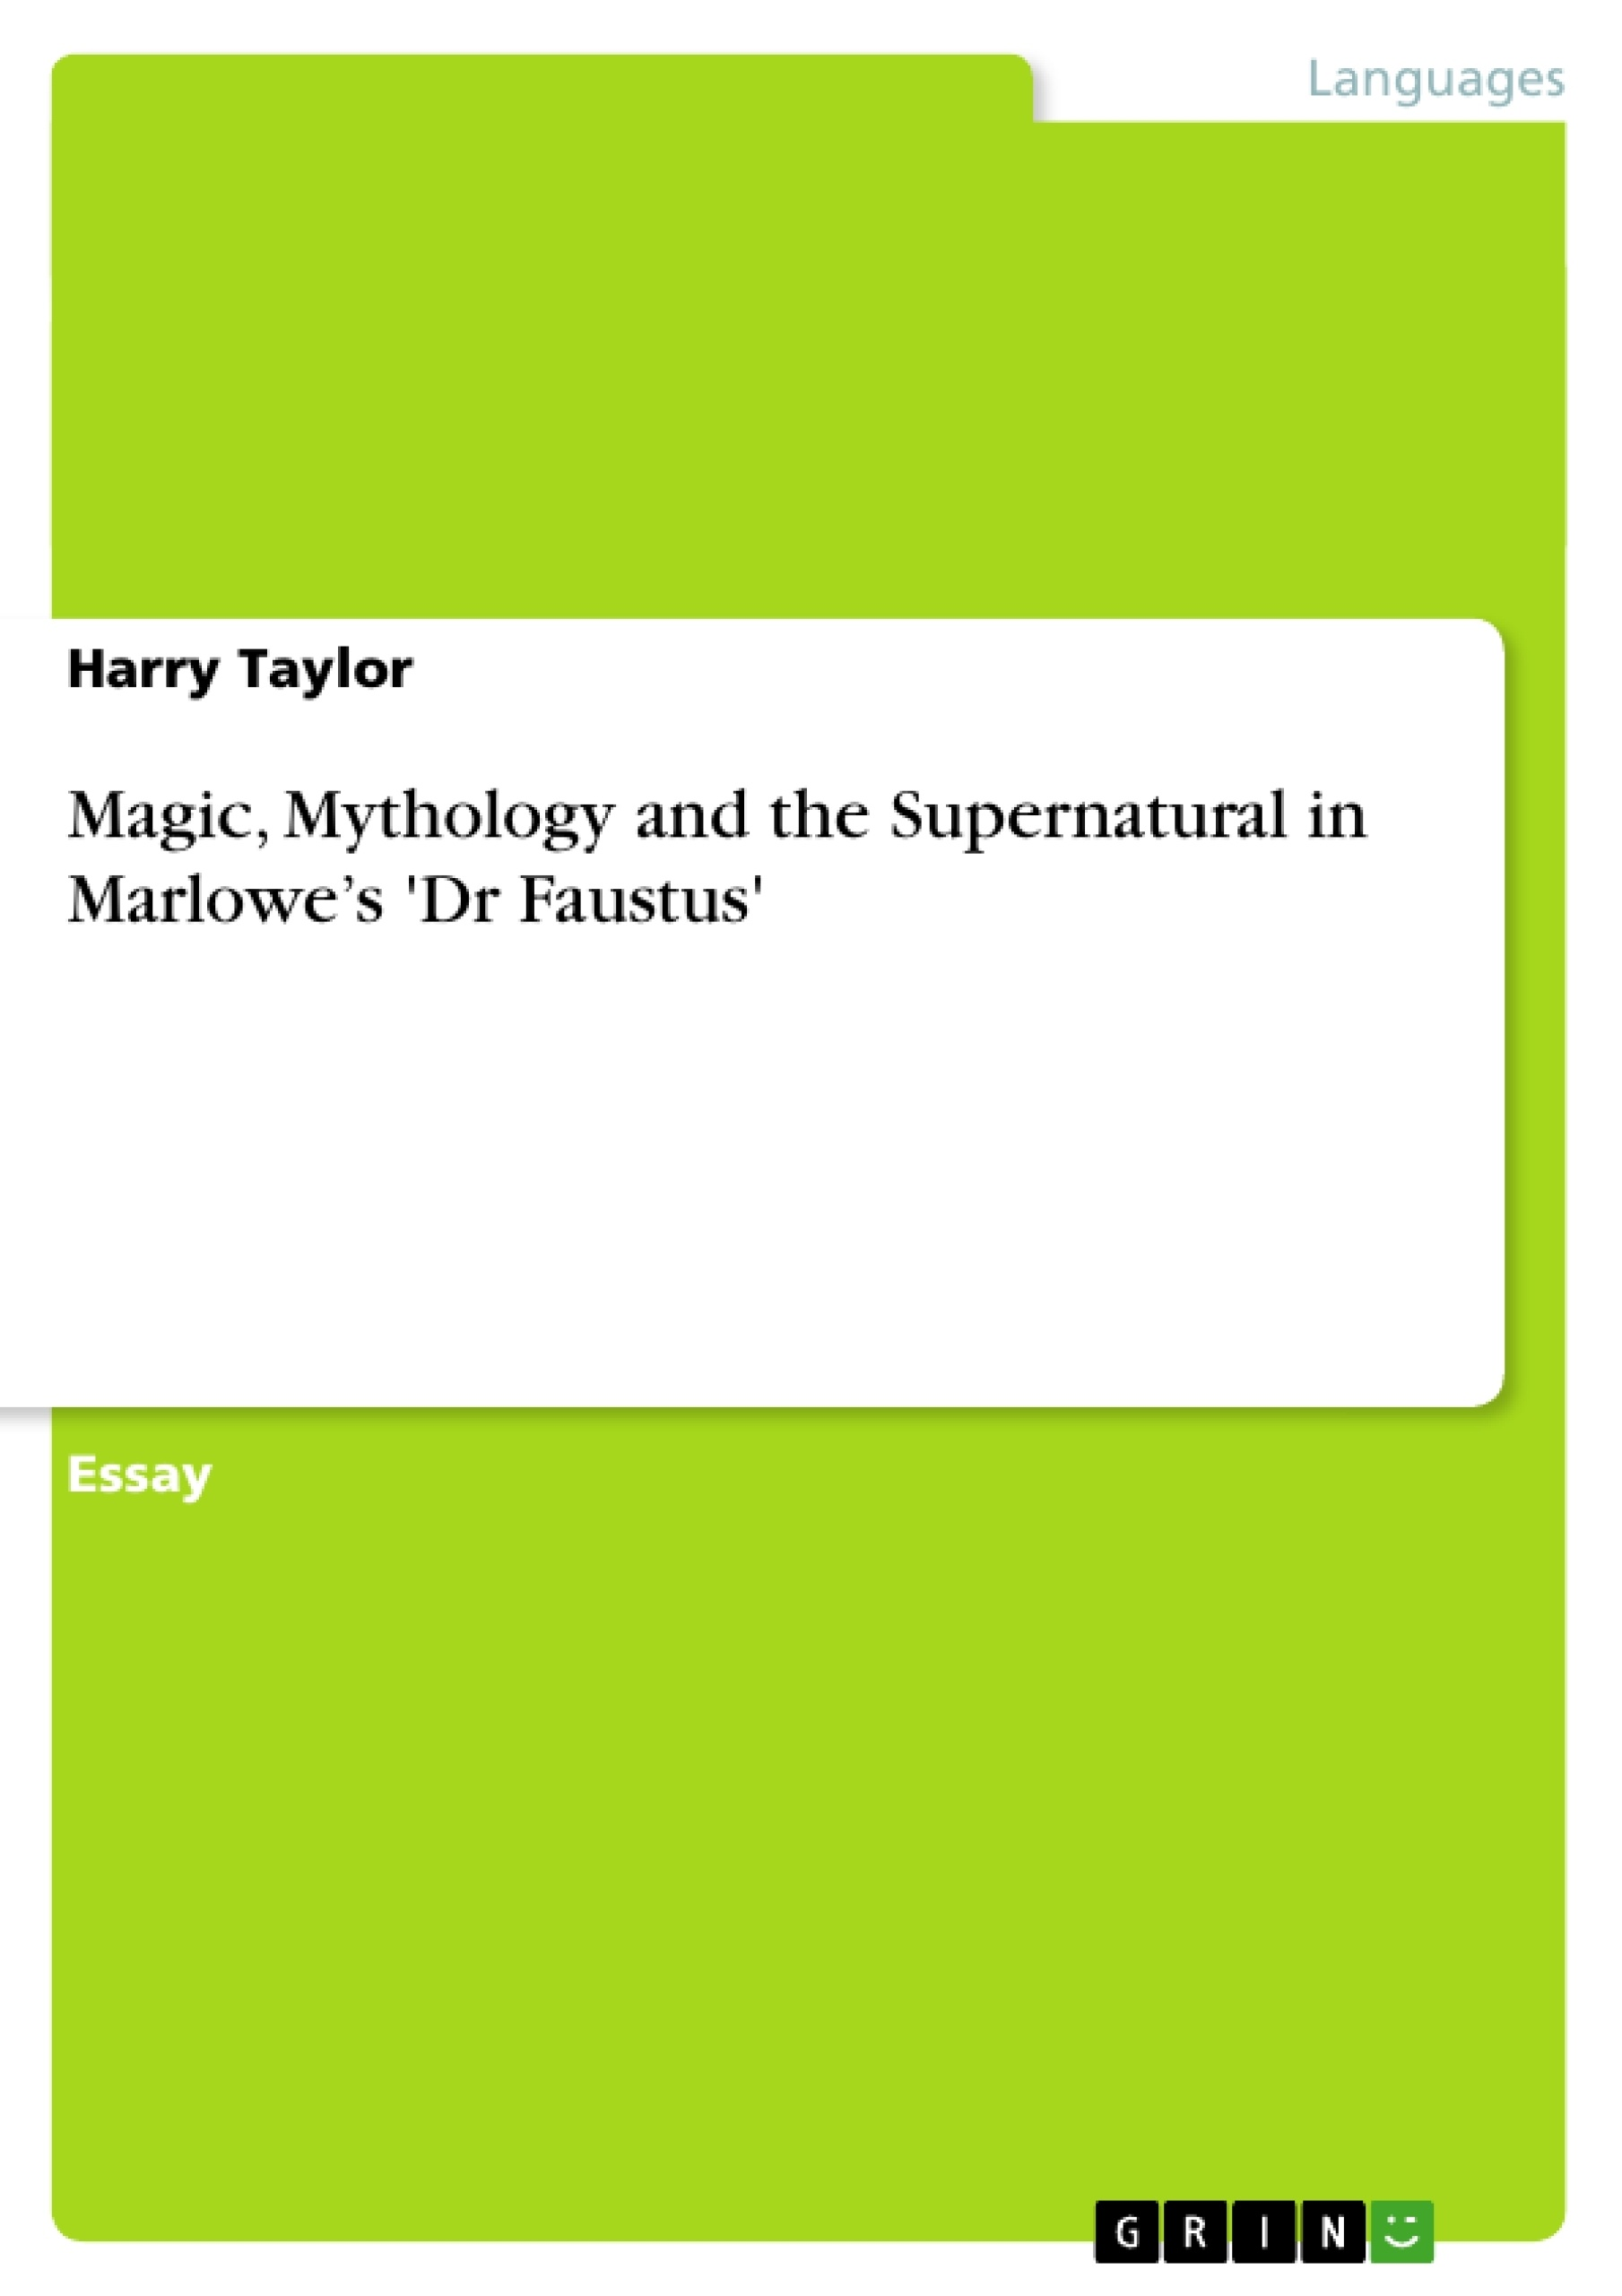 magic mythology and the supernatural in marlowe s dr faustus upload your own papers earn money and win an iphone 7